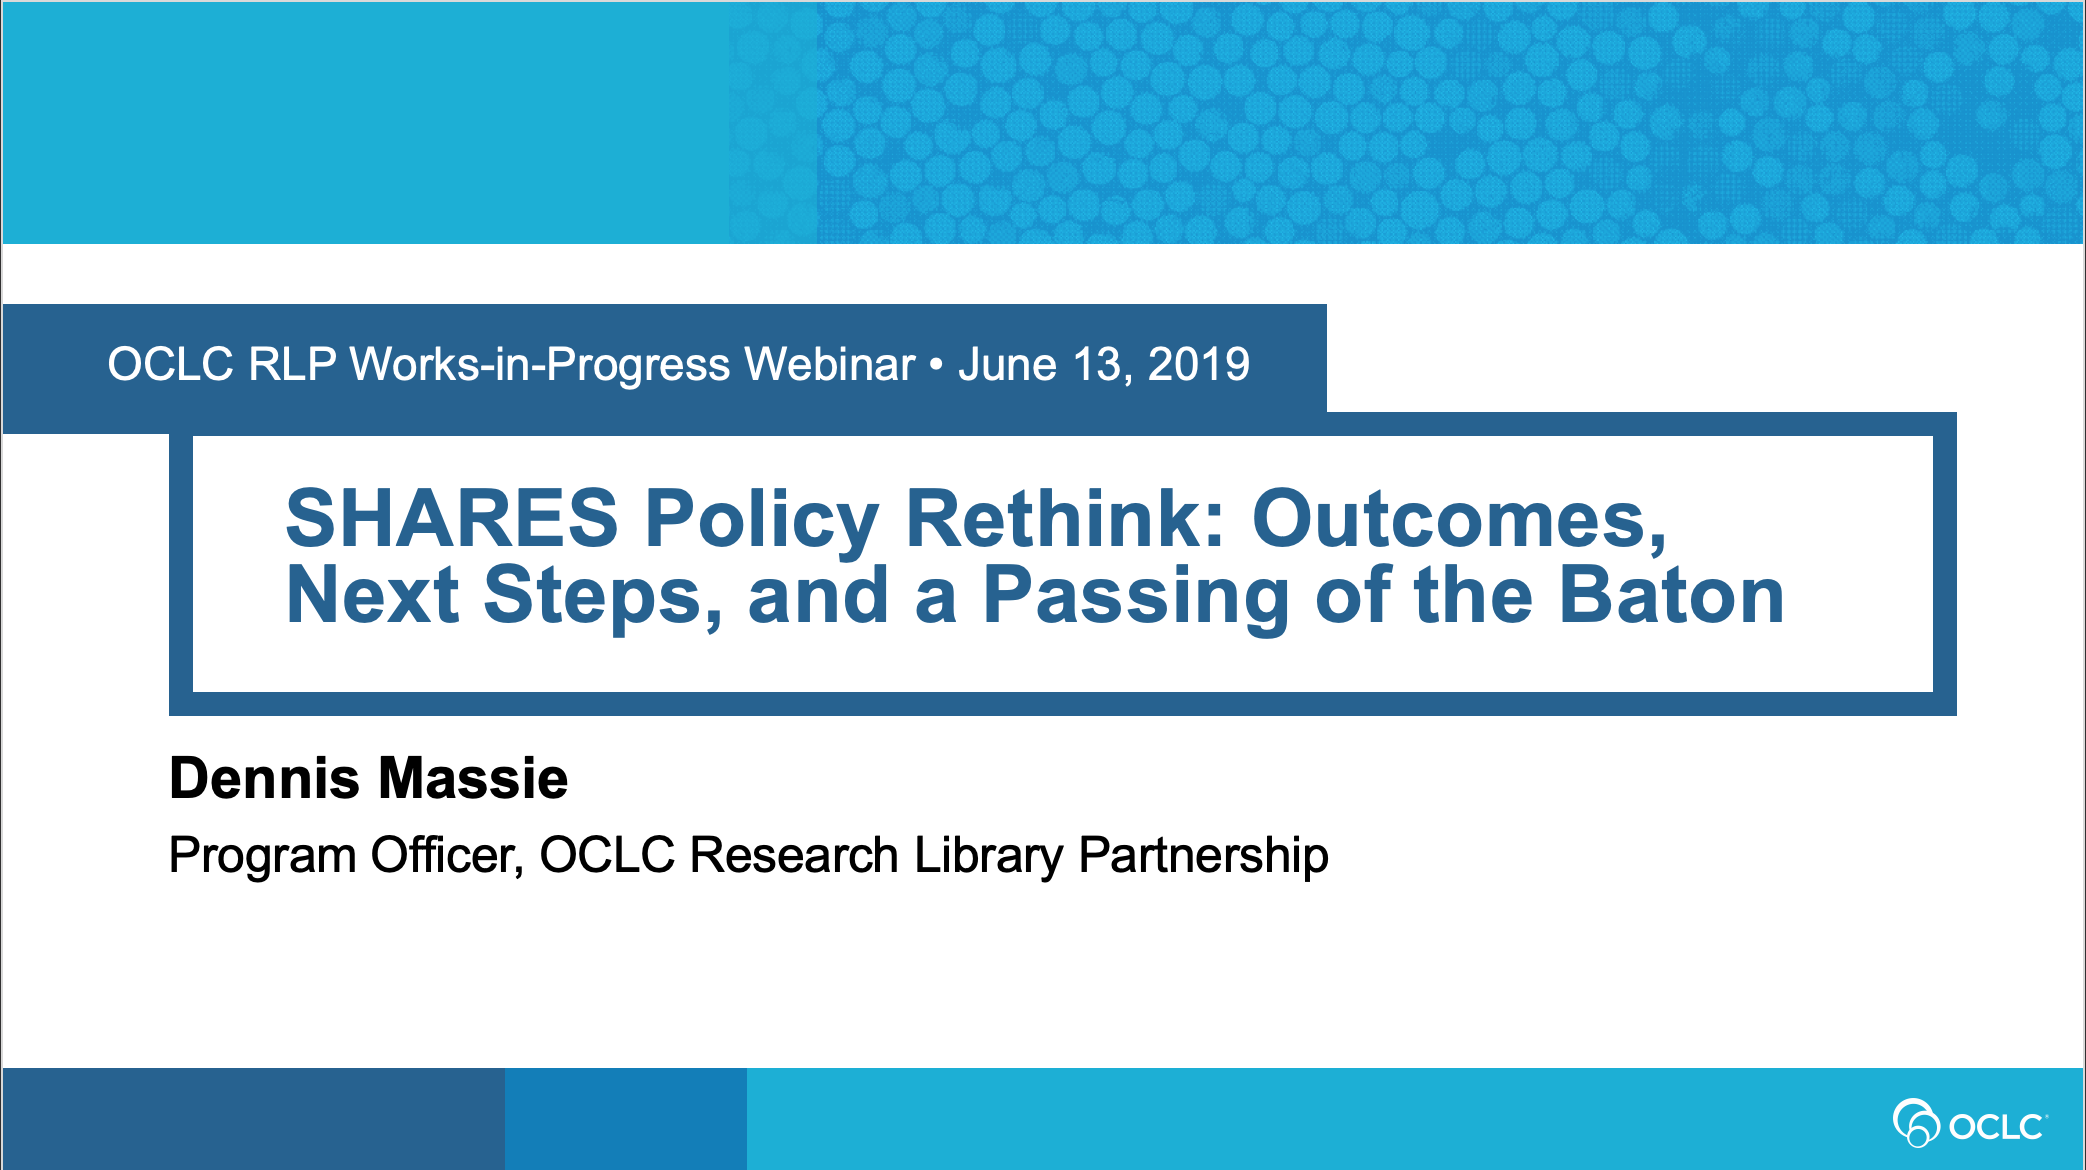 OCLC RLP SHARES Policy Rethink: Outcomes and Next Steps  (video)